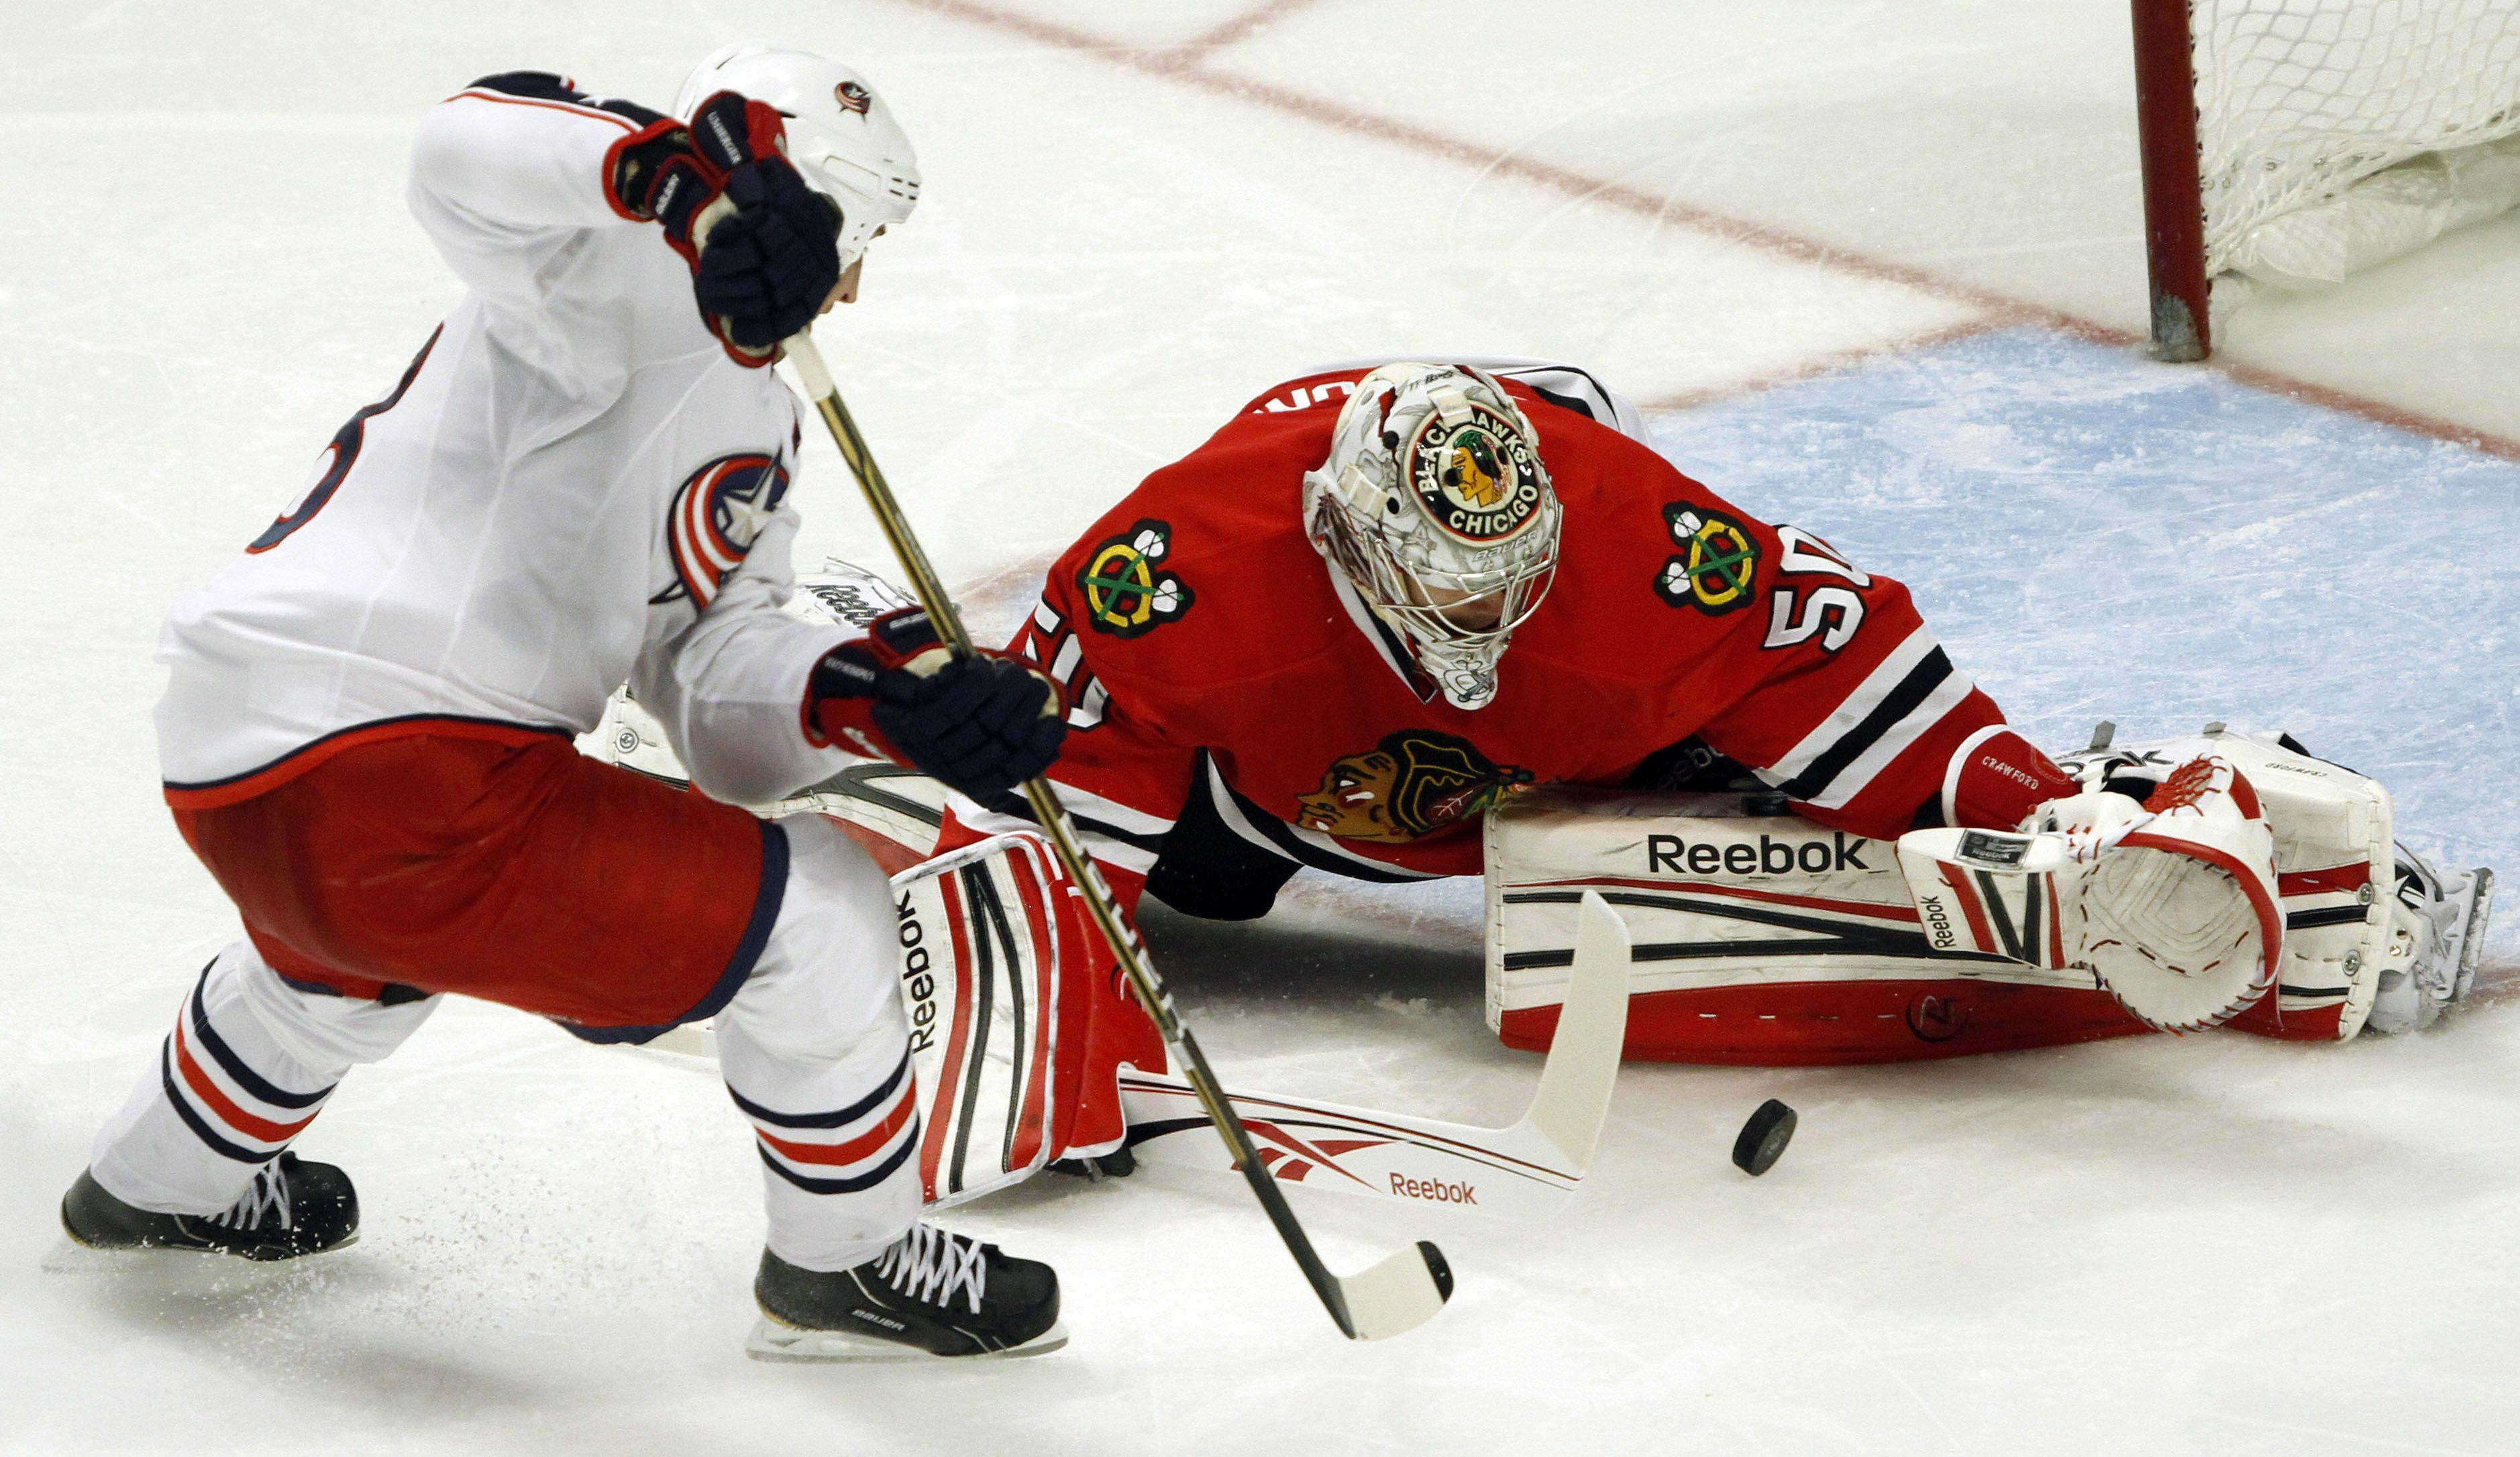 Chicago Blackhawks goalie Corey Crawford makes a save on Columbus Blue Jackets left wing R.J. Umberger in the third period during their game Monday night at the United Center in Chicago.